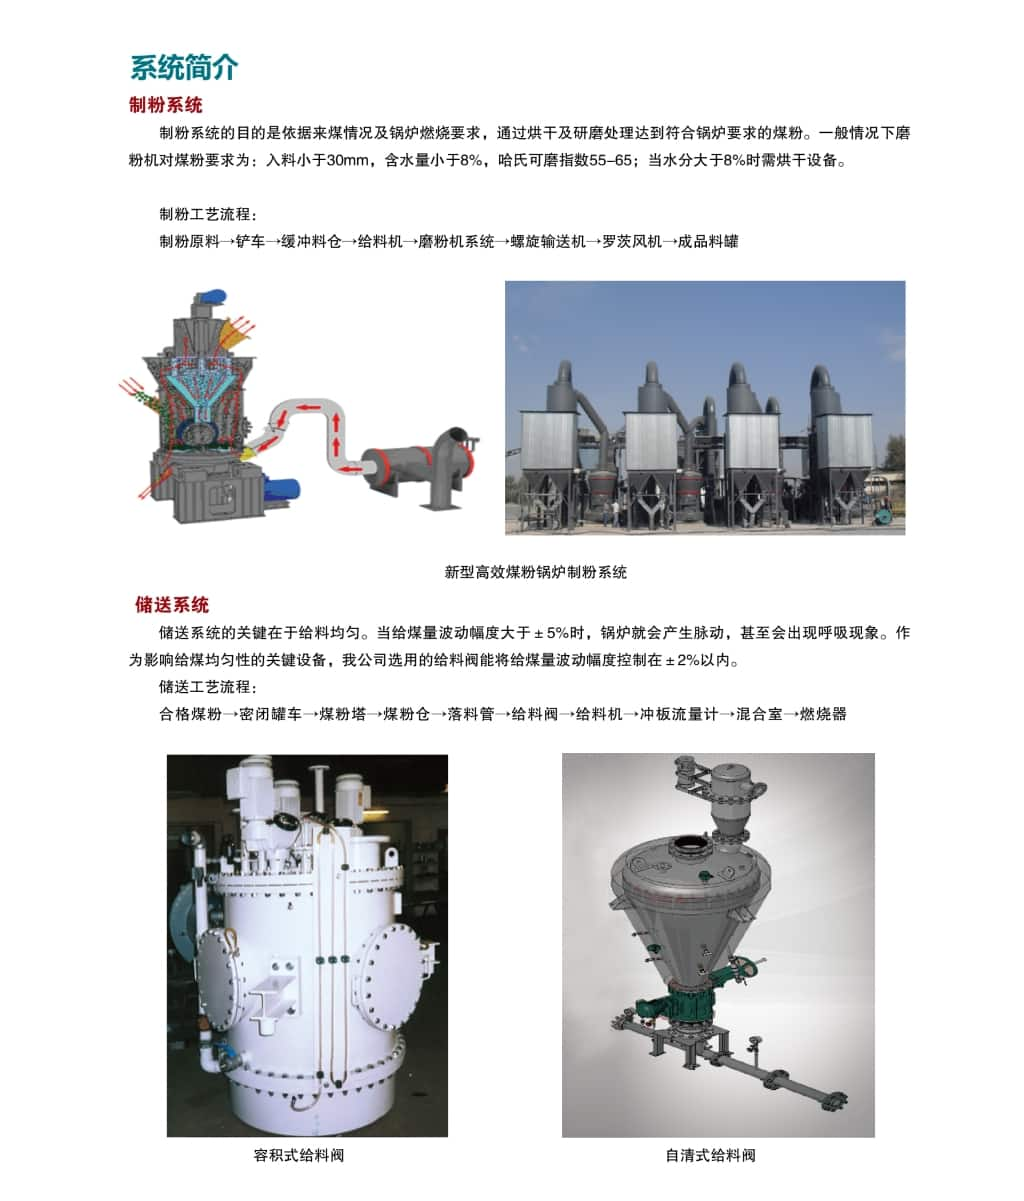 High efficiency pulverized coal furnace